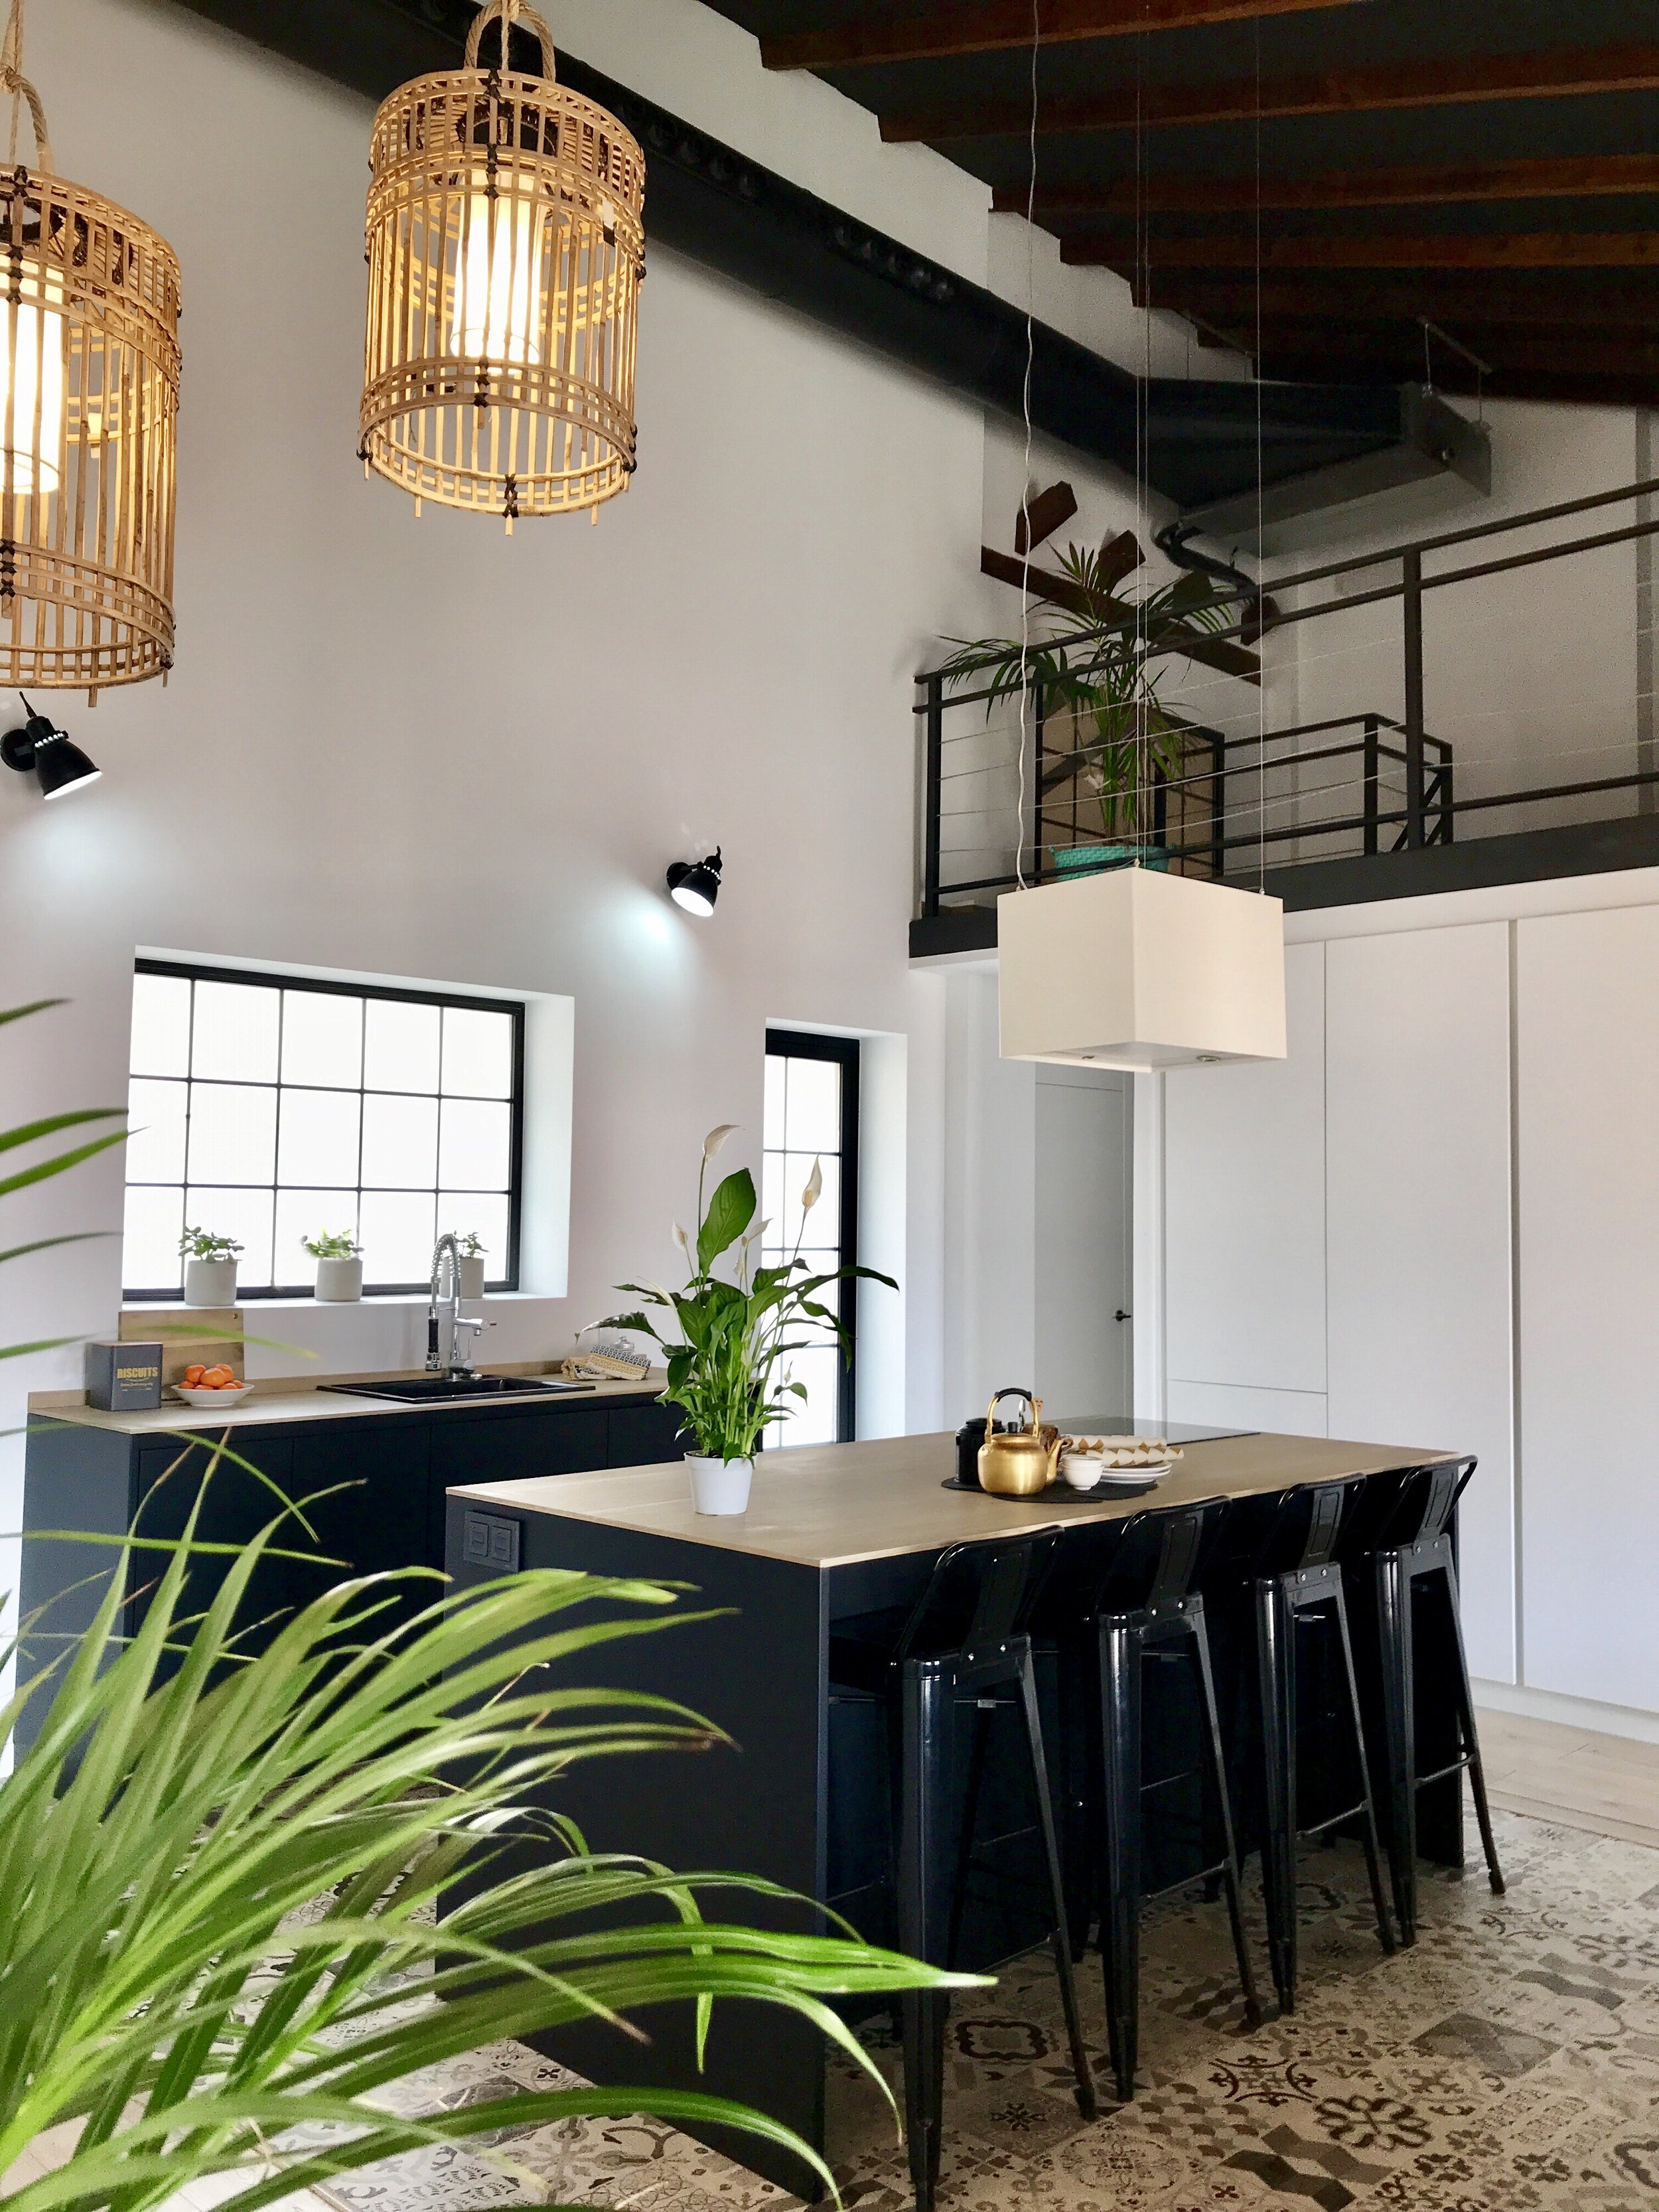 Image of a modern kitchen styled with natural light and hanging lamps and a high beamed ceiling for a warm and strong feeling..